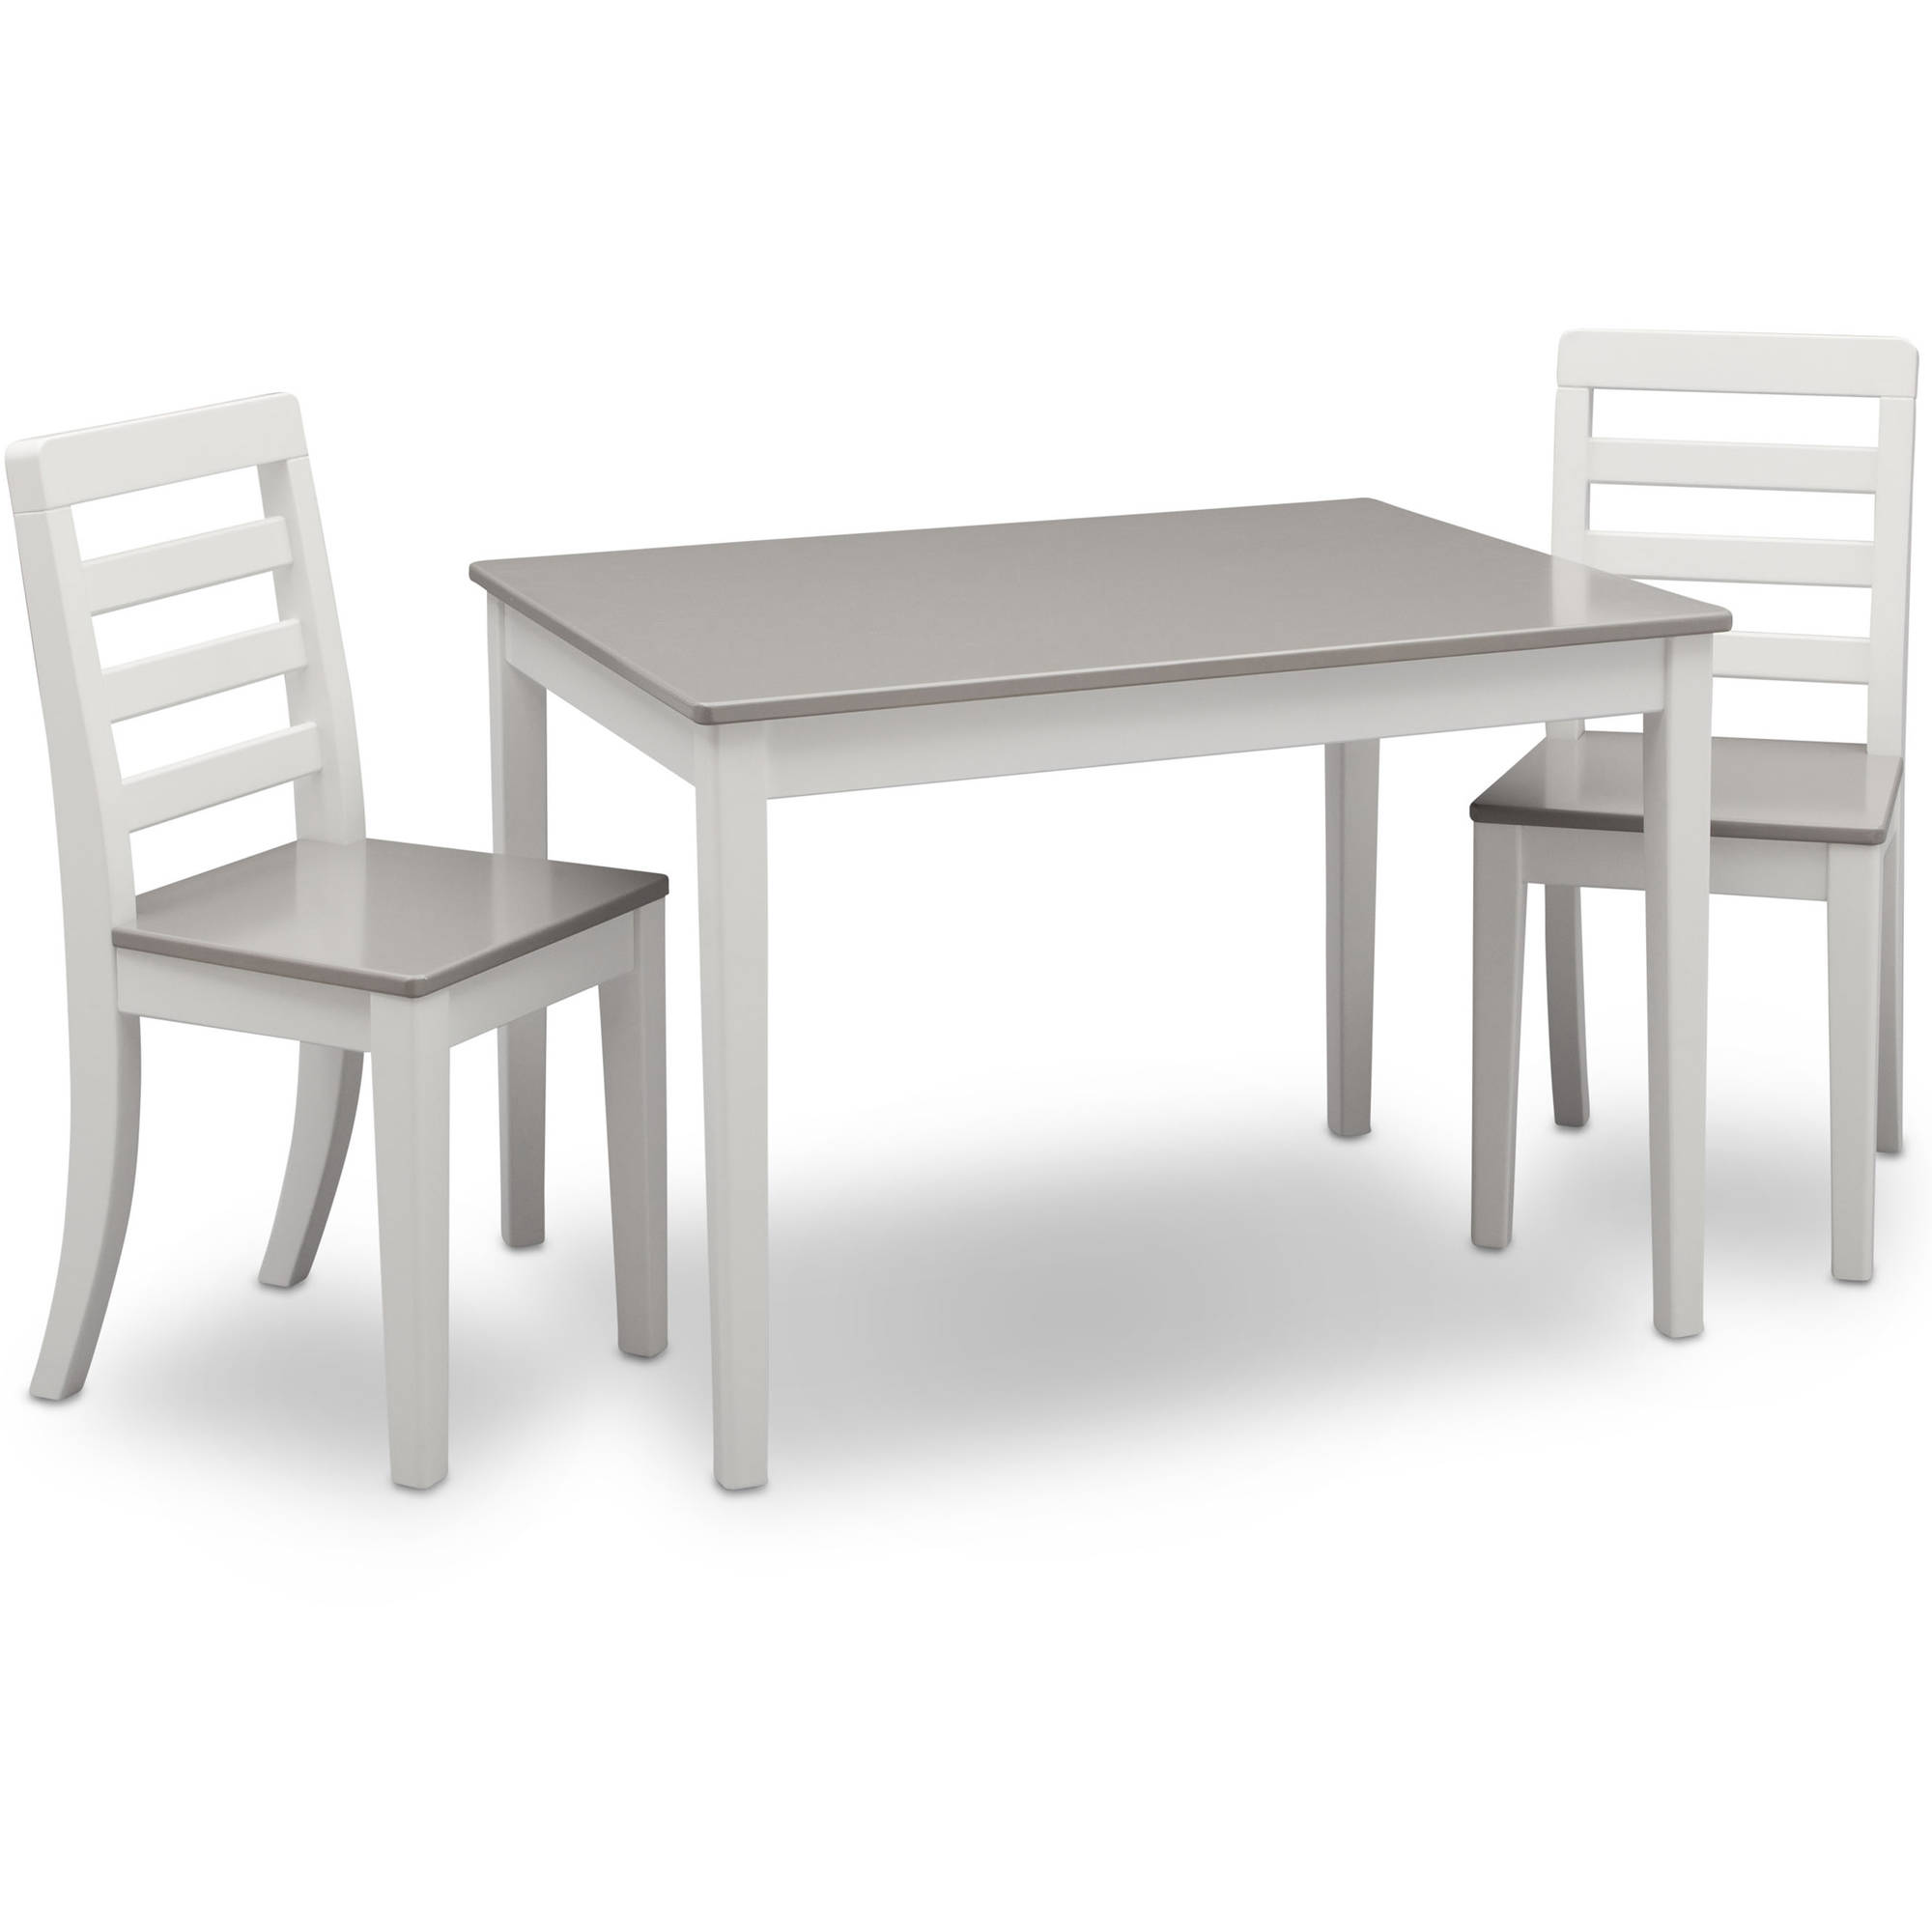 Table With Two Chairs Delta Children Gateway Table And 2 Chairs Set Multiple Colors